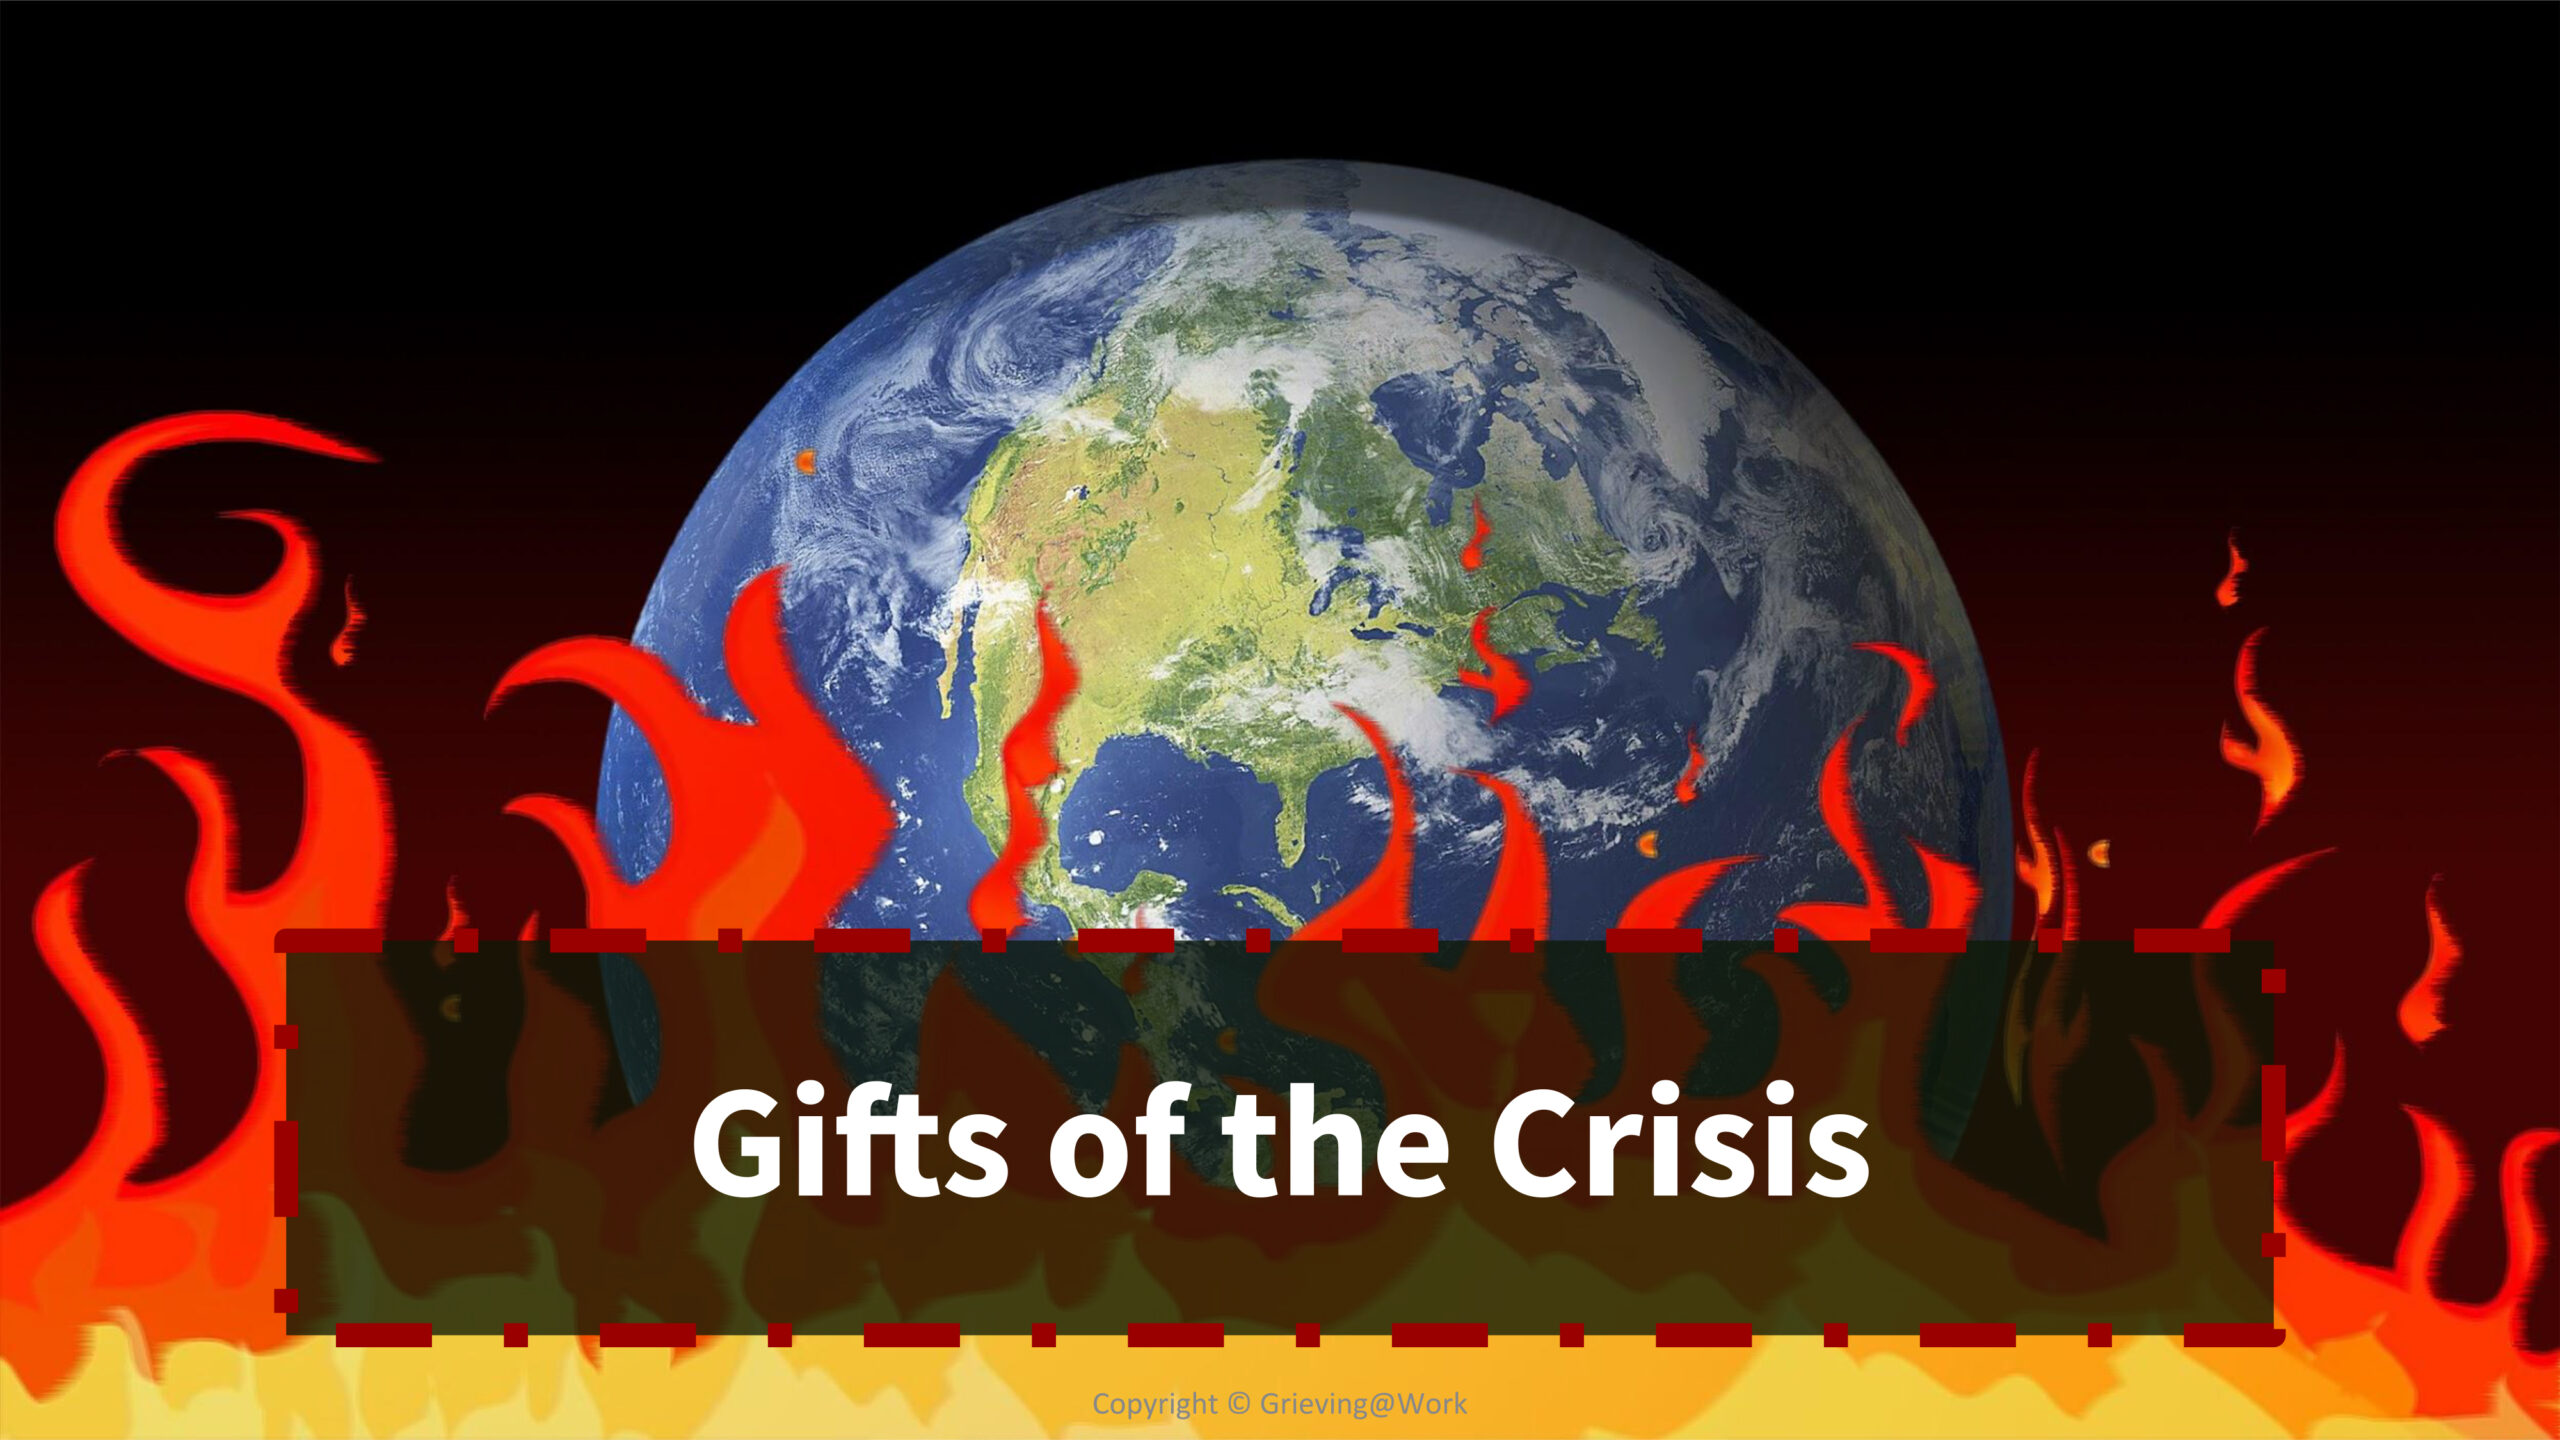 Grieving@Work - Website Image - Gifts of the Crisis